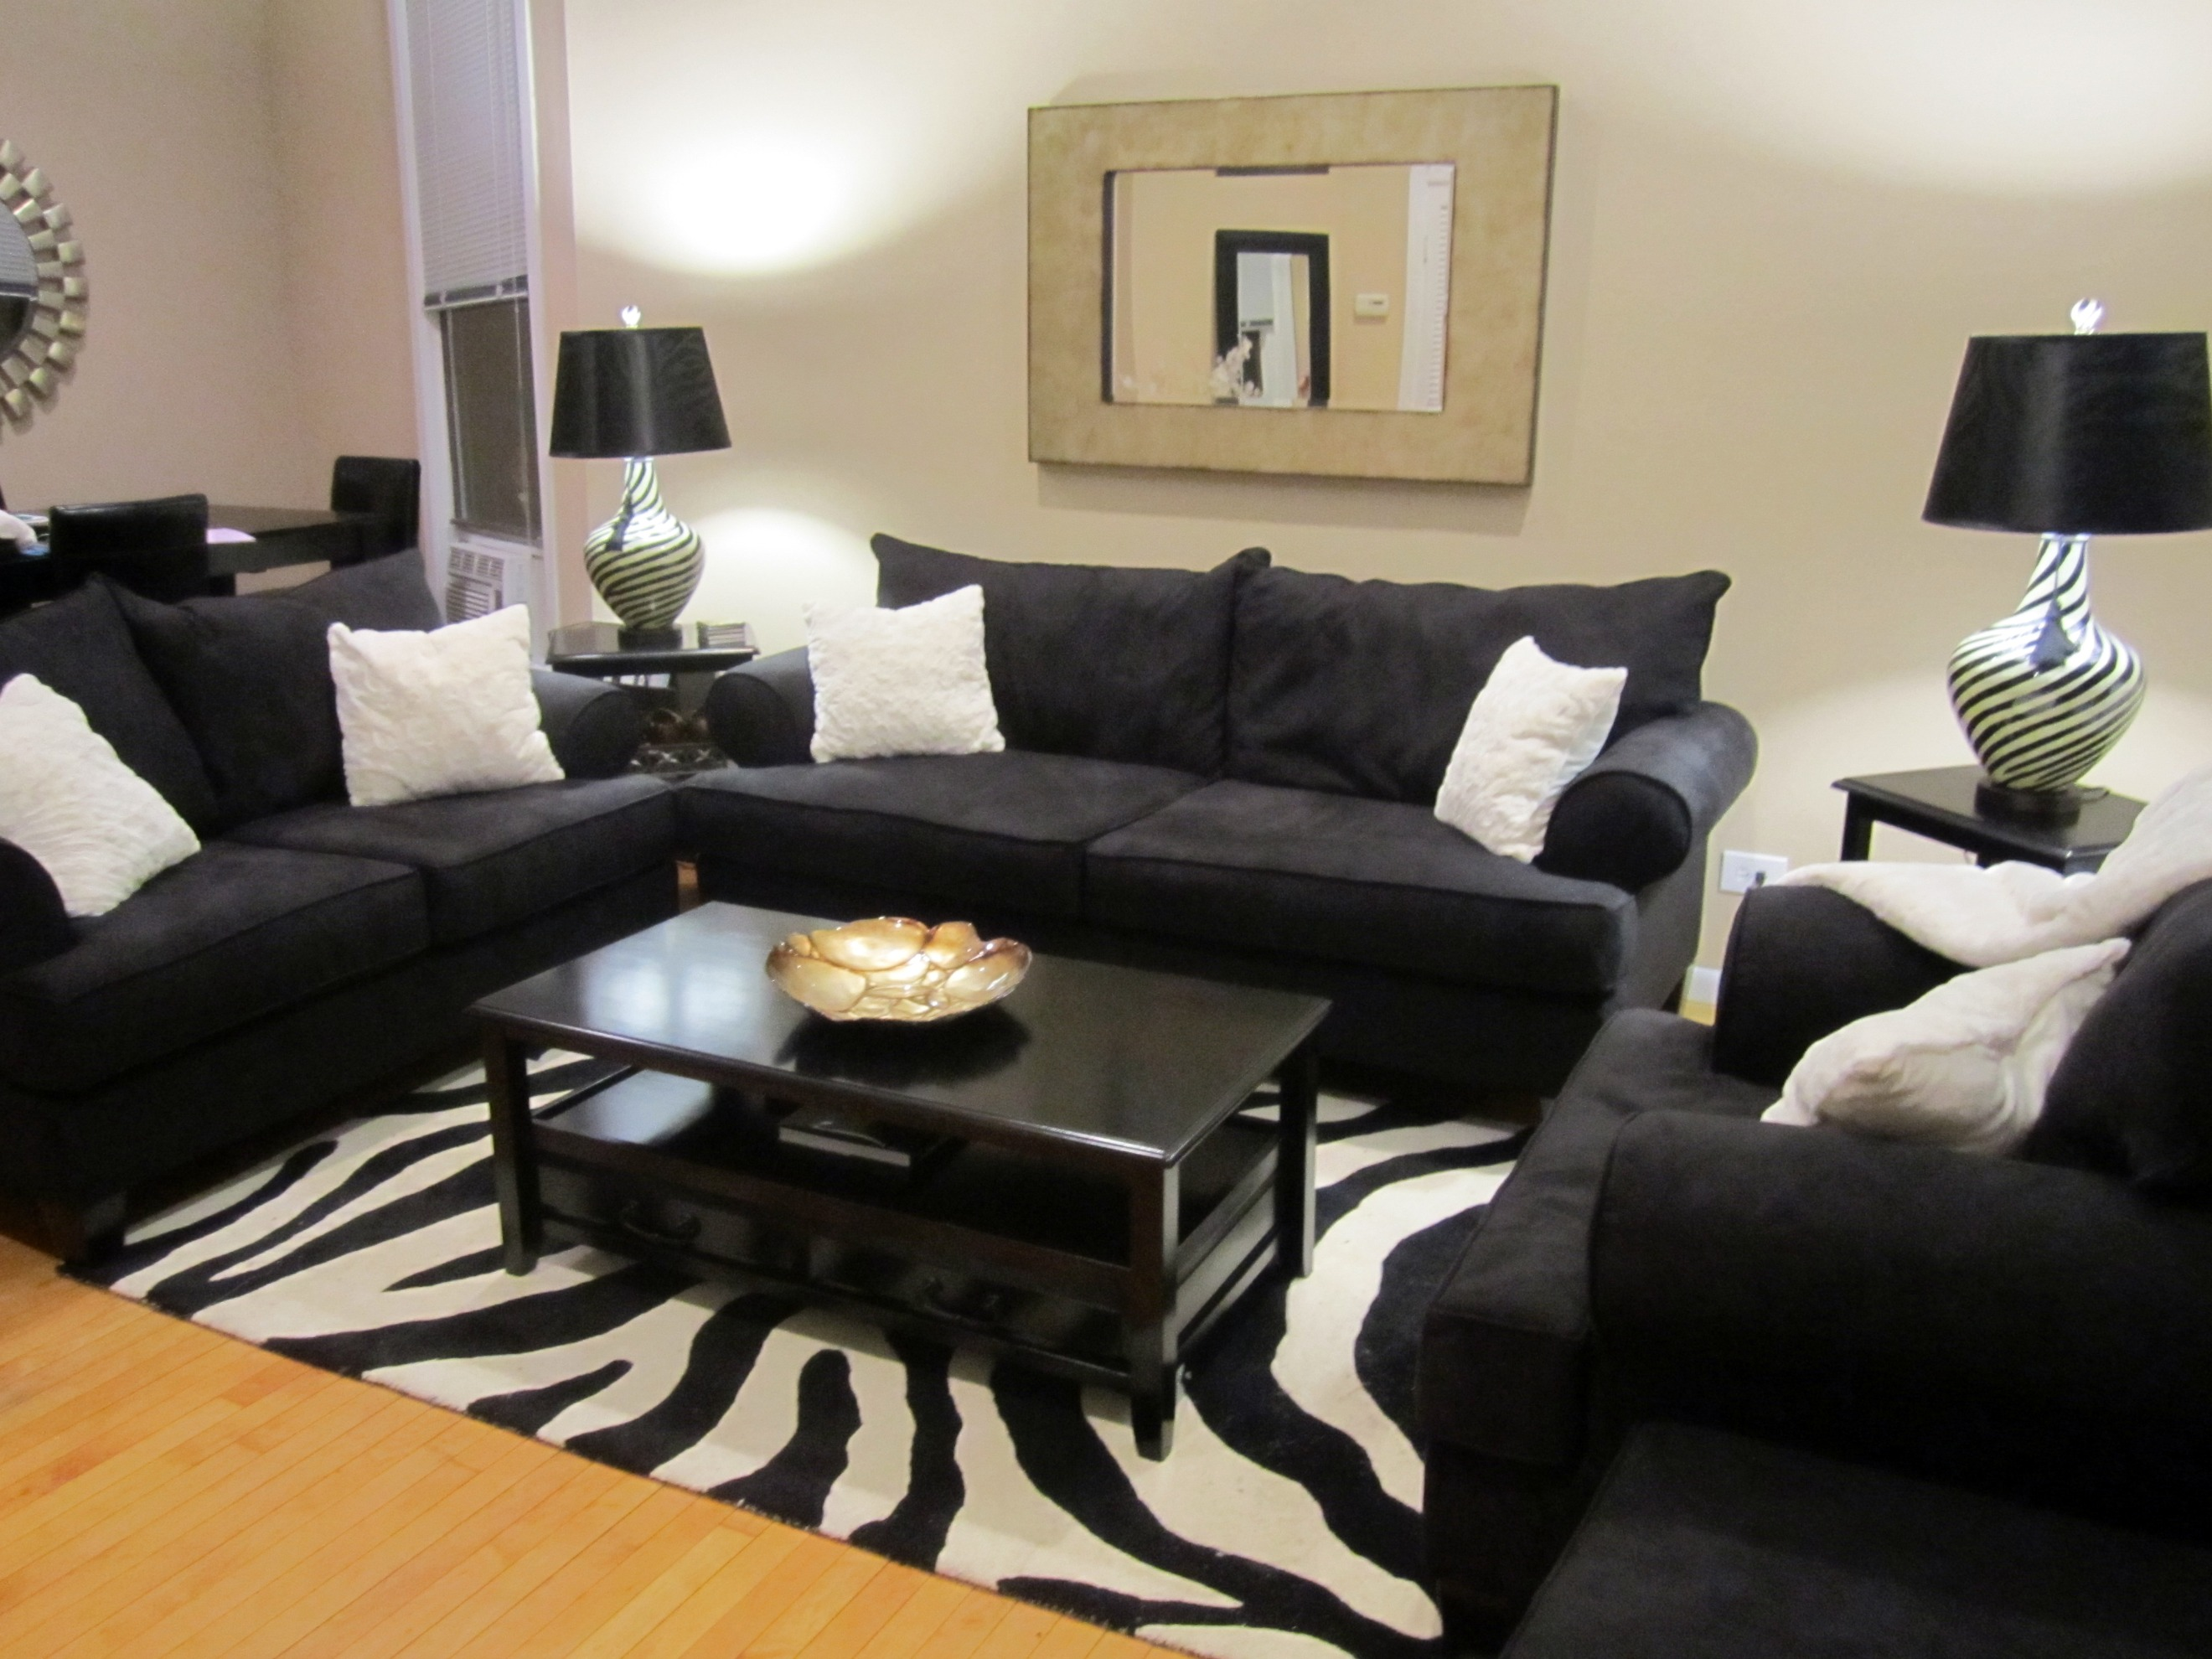 zebra dining chairs john lewis armchair covers the new place - living room — bows & sequins